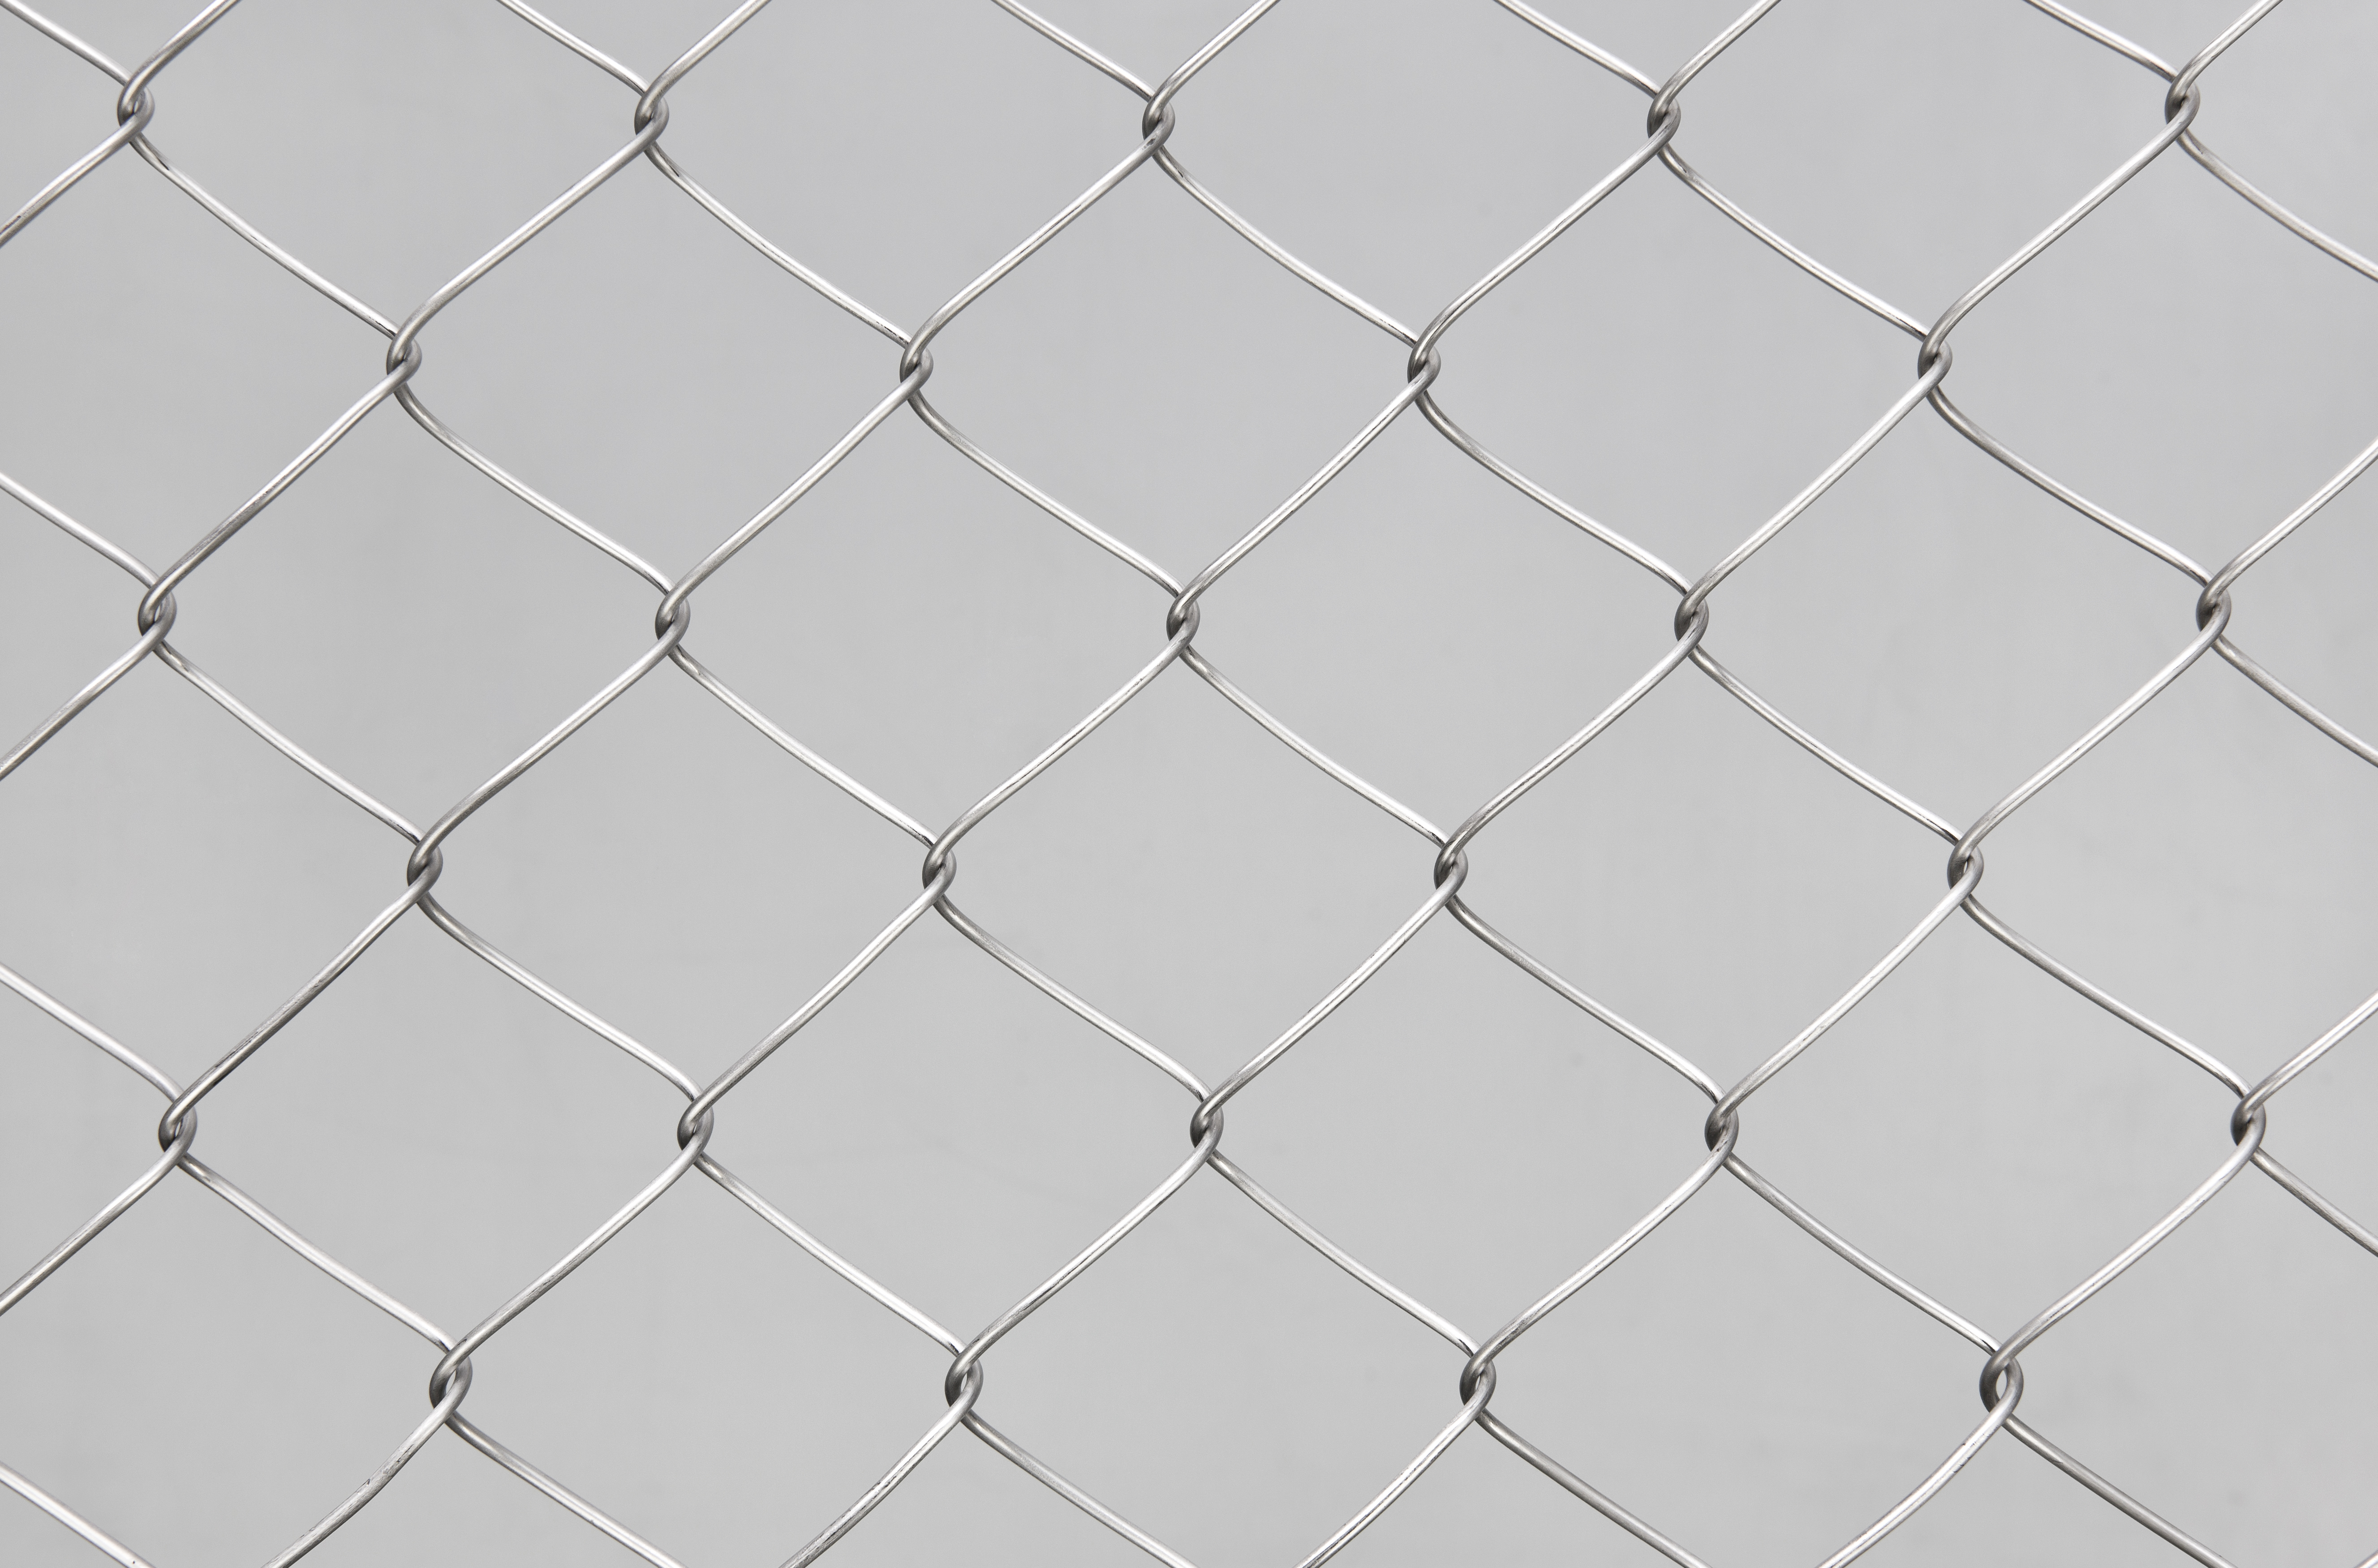 Coastal Application | Stainless Steel Wire & Mesh